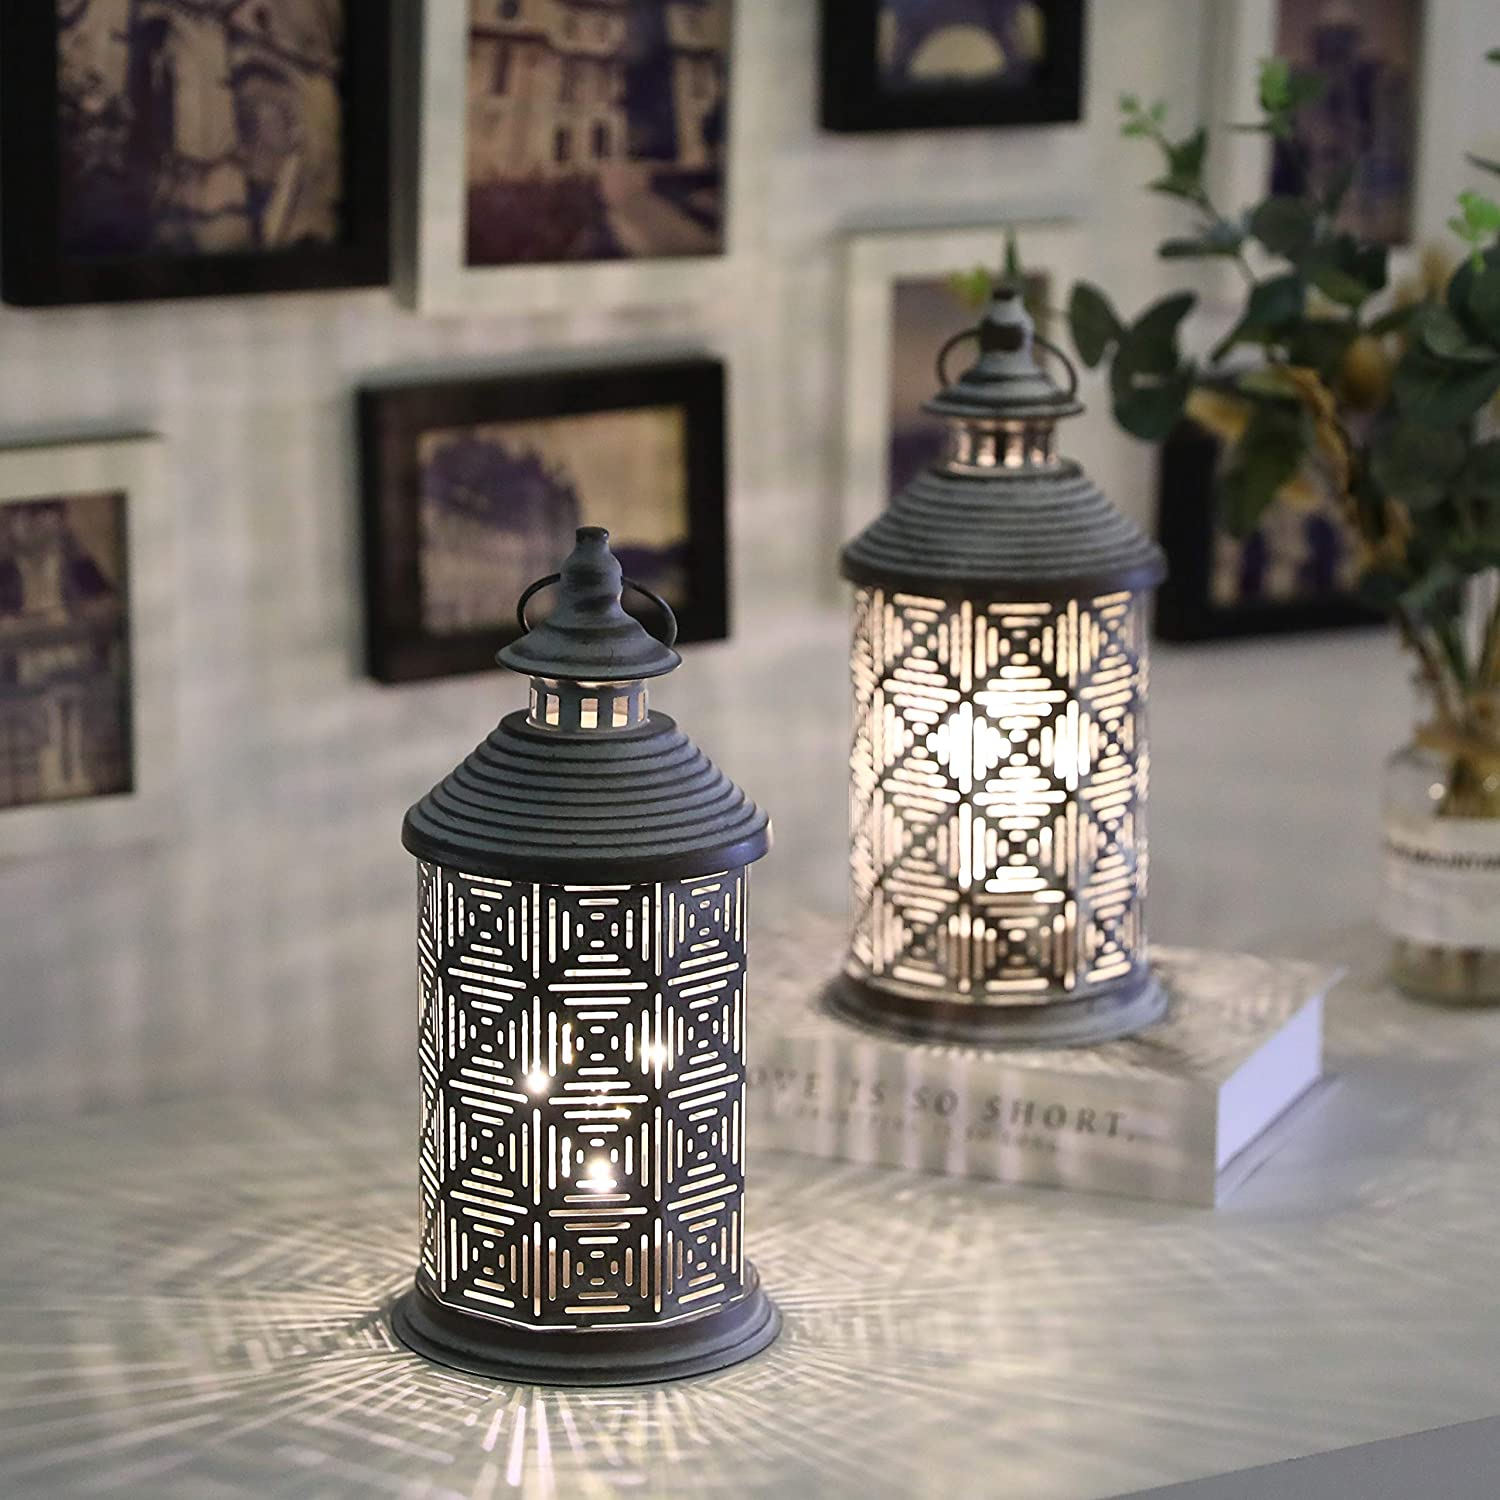 """JHY DESIGN Set of 2 Metal Table Lamp Battery Powered 10.5"""" Tall Cordless Lamps Vintage Bedside Lamps with Edison Bulb for Living Room Bedroom Weddings Parties Garden Hallways Outdoor(Square Pattern)"""